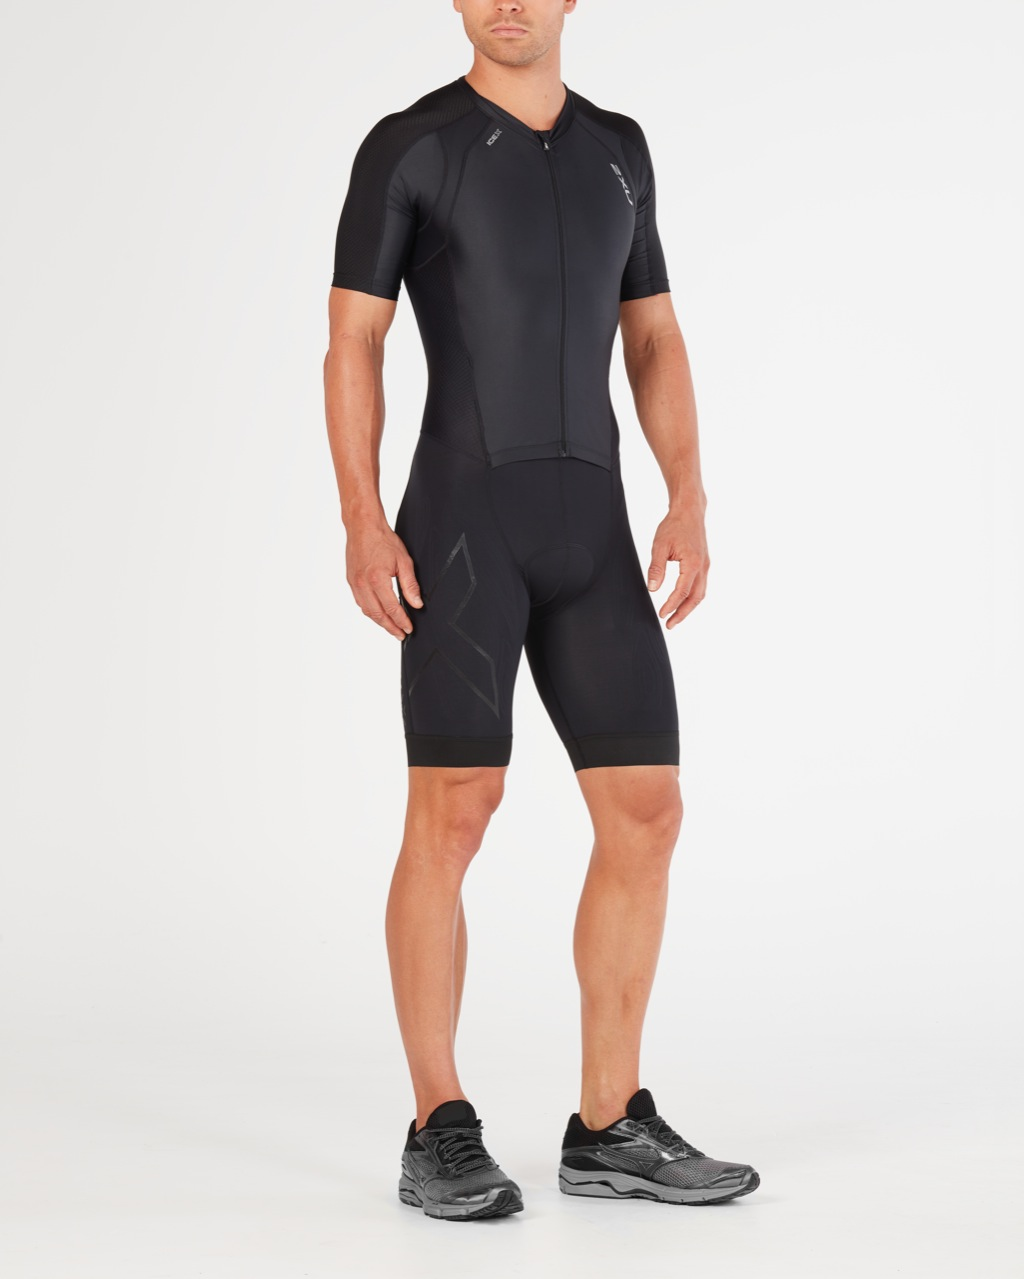 BODY 2XU MEN'S COMPRESSION FULL ZIP SLEEVED TRISUIT MT4838d black.jpg